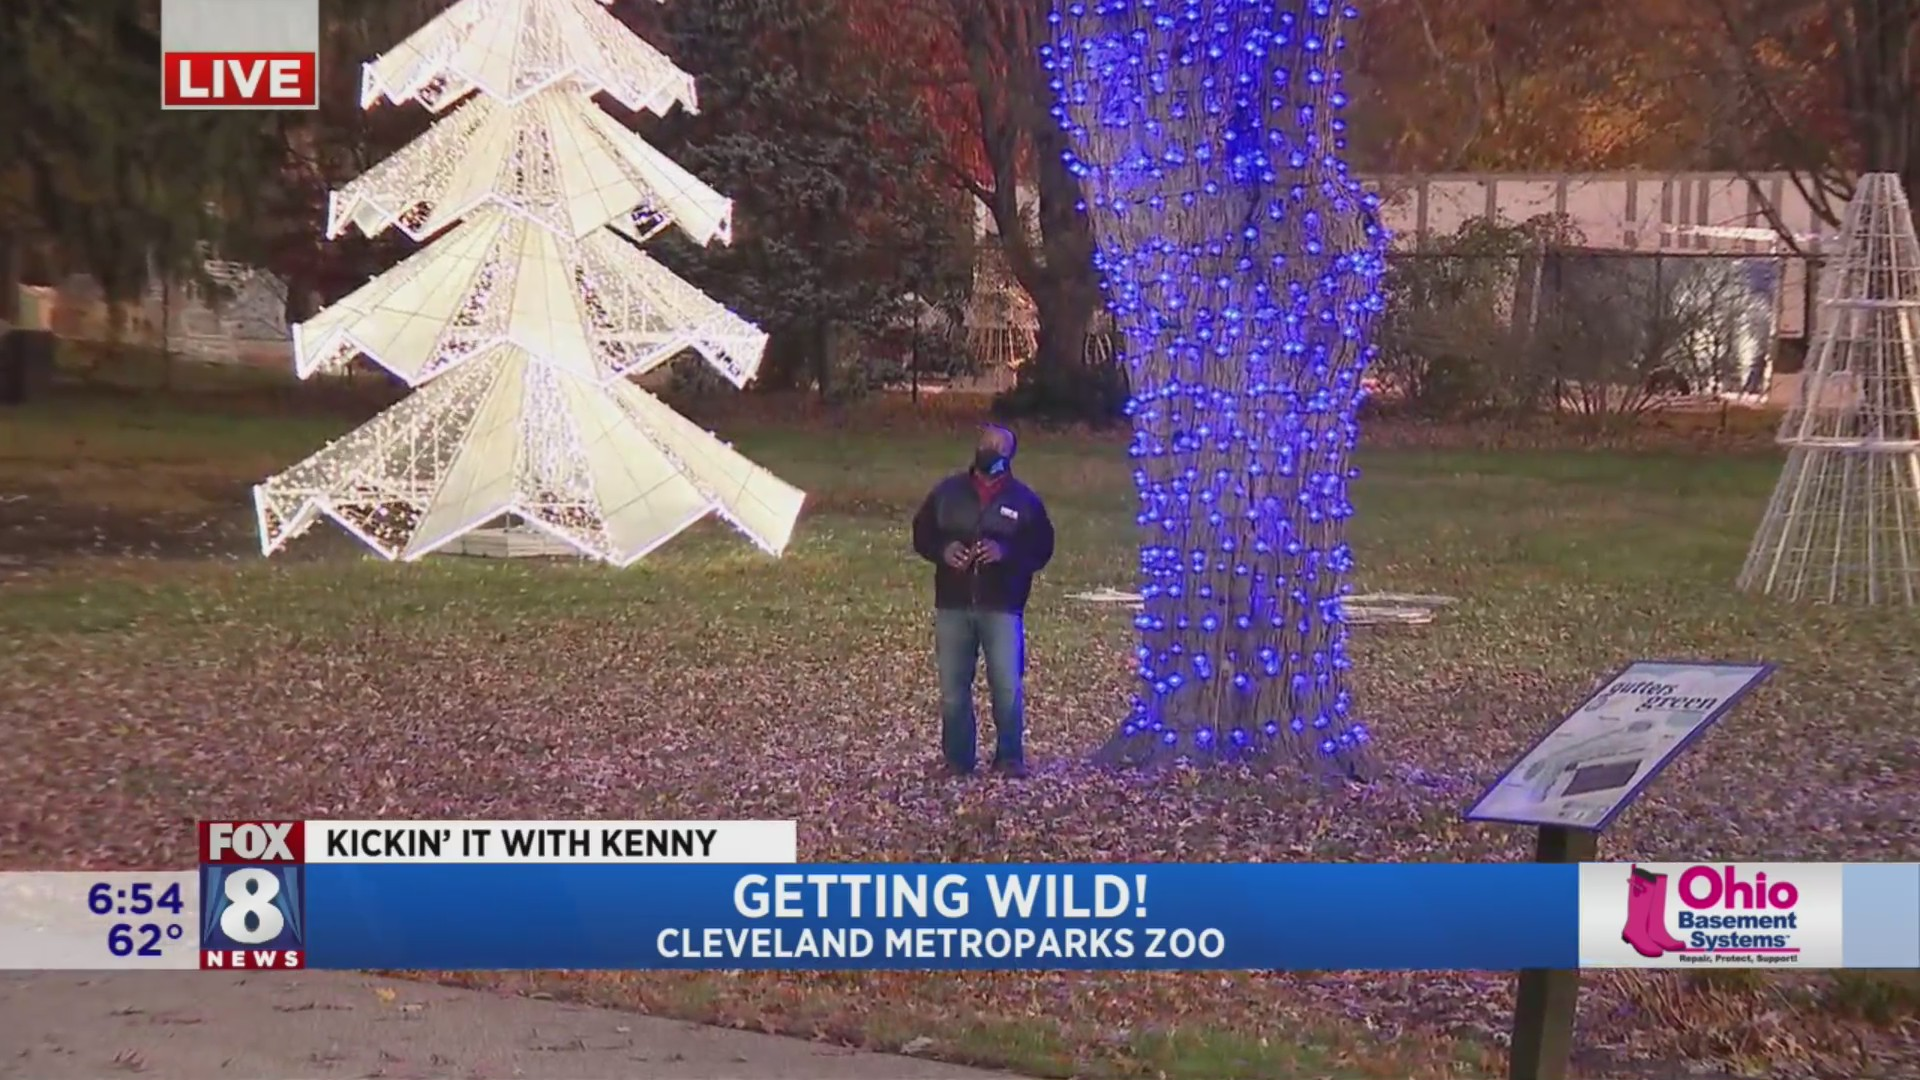 Zoo Lights 2020 Cleveland Christmas Kenny gets a little 'wild' at Cleveland Metroparks Zoo | fox8.com